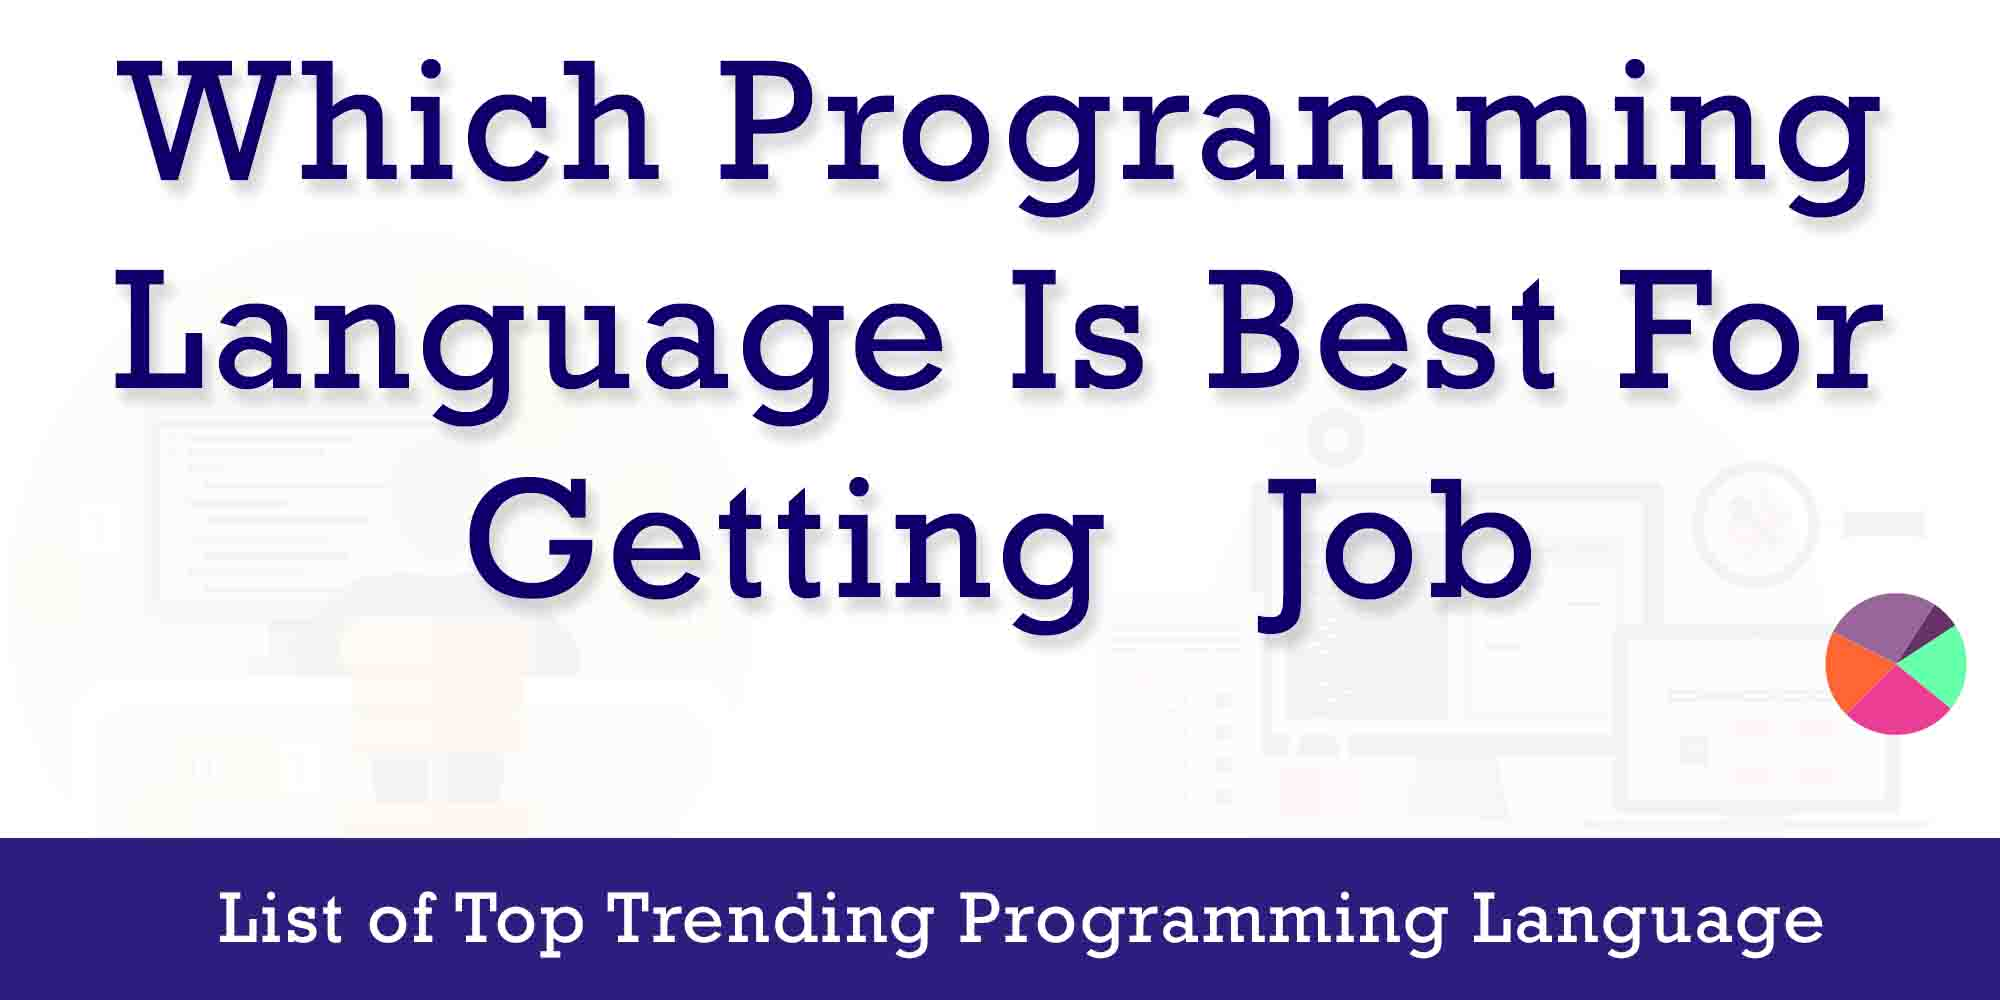 Which programming language is best for getting a job